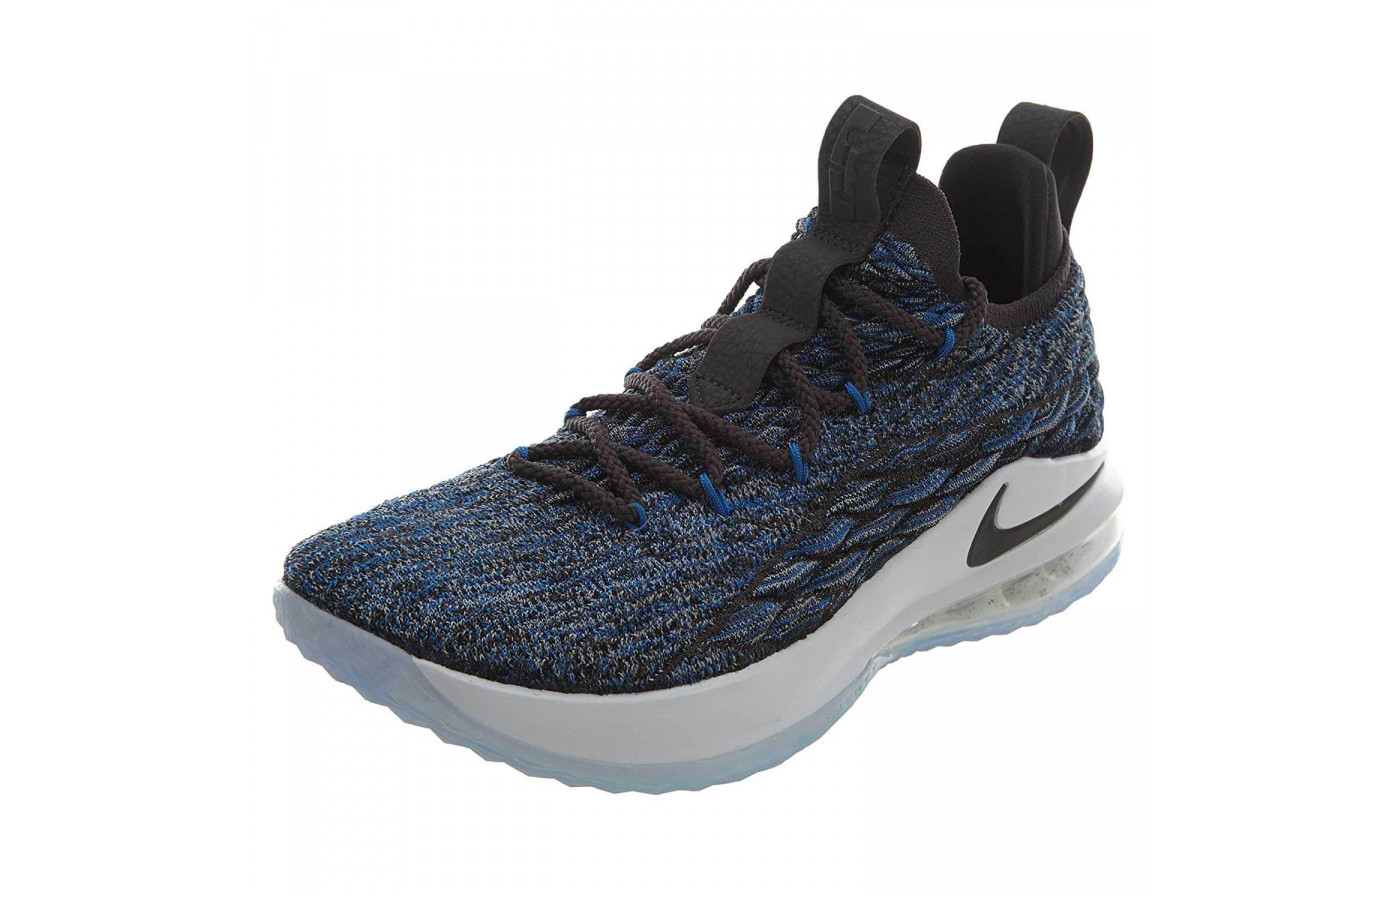 11351a68c21 The Lebron 15 Low is constructed with a Battleknit upper material ...